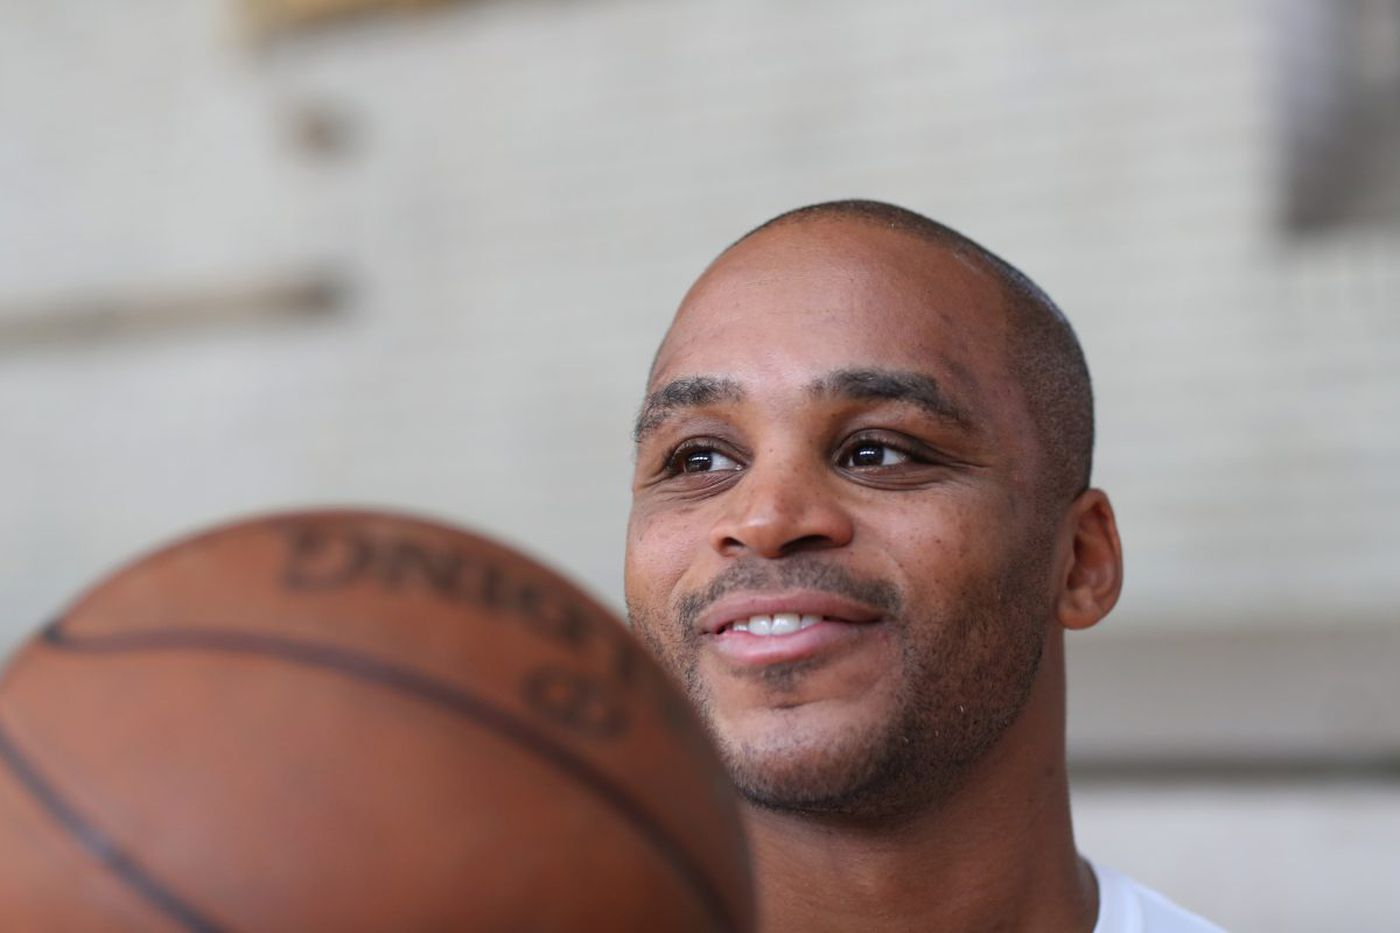 Jameer Nelson at age 35 - what it takes to still thrive in the NBA | Mike Jensen